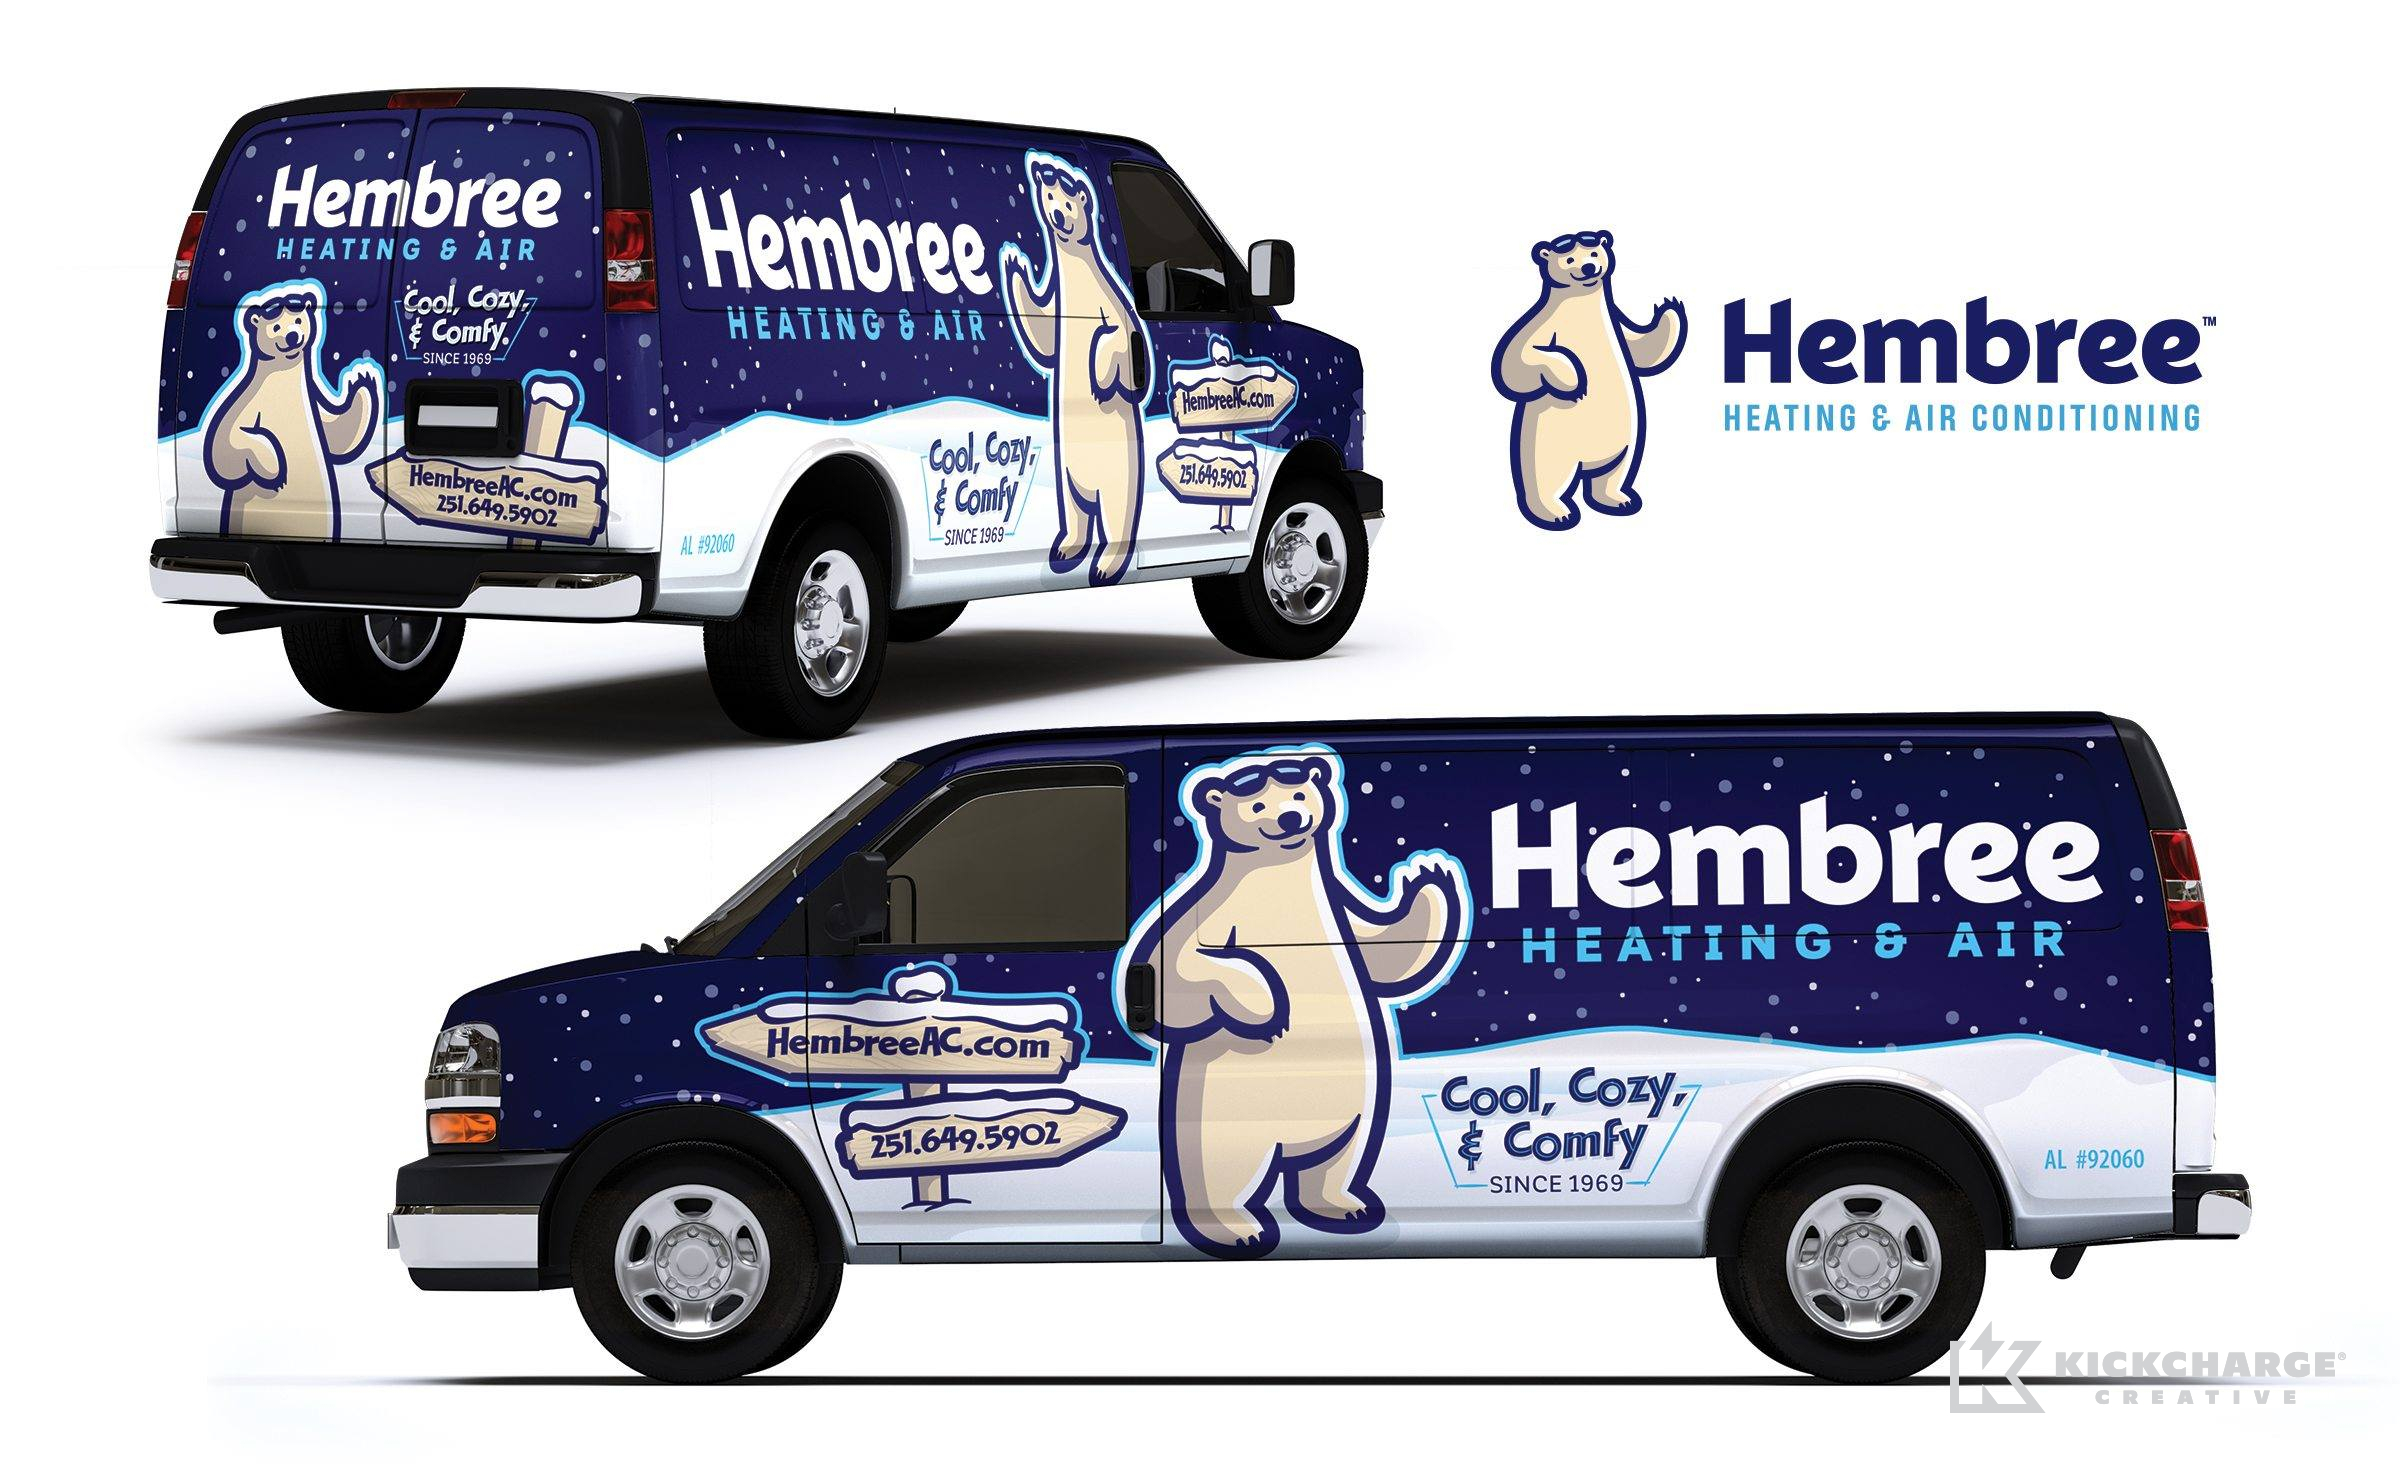 Hembree Heating & Air Conditioning